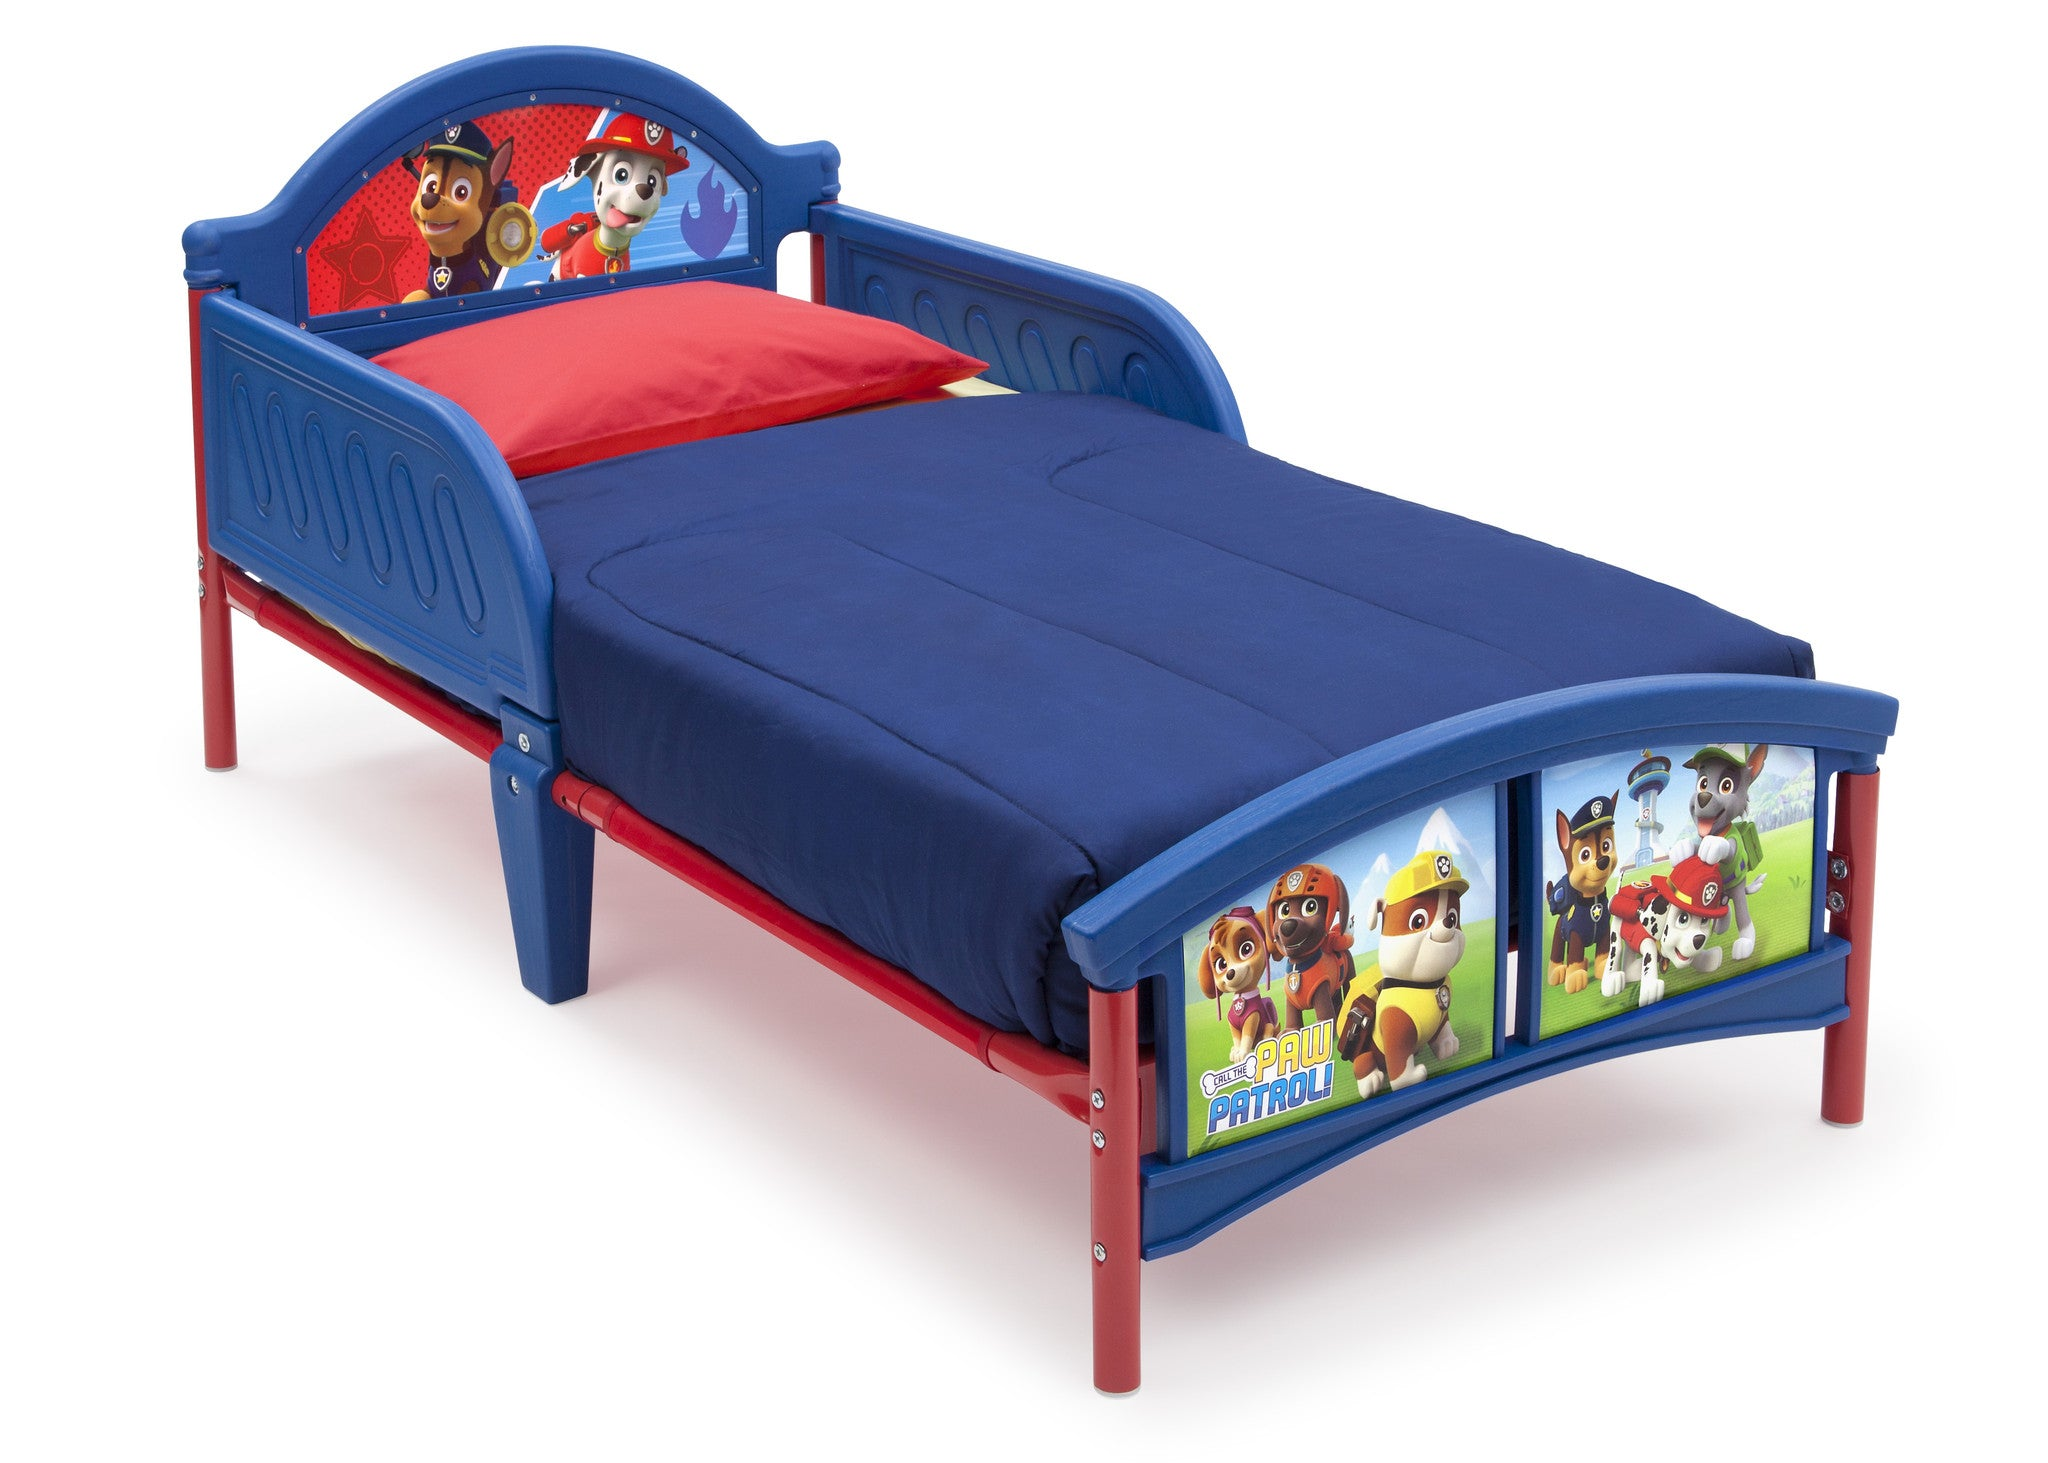 Delta Children PAW Patrol Toddler Bed Left View A1a